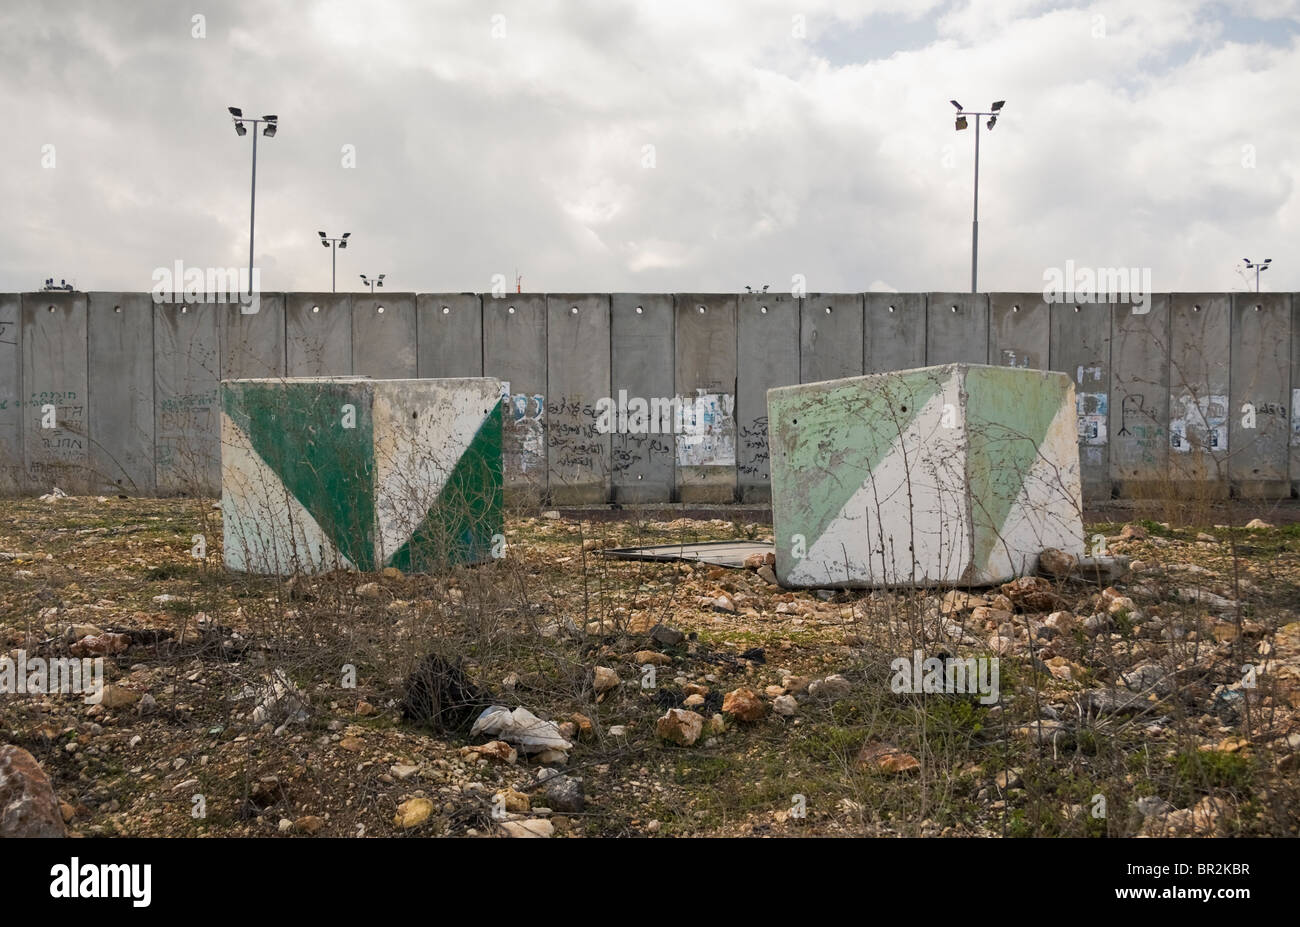 the separation wall, Palestine - Stock Image